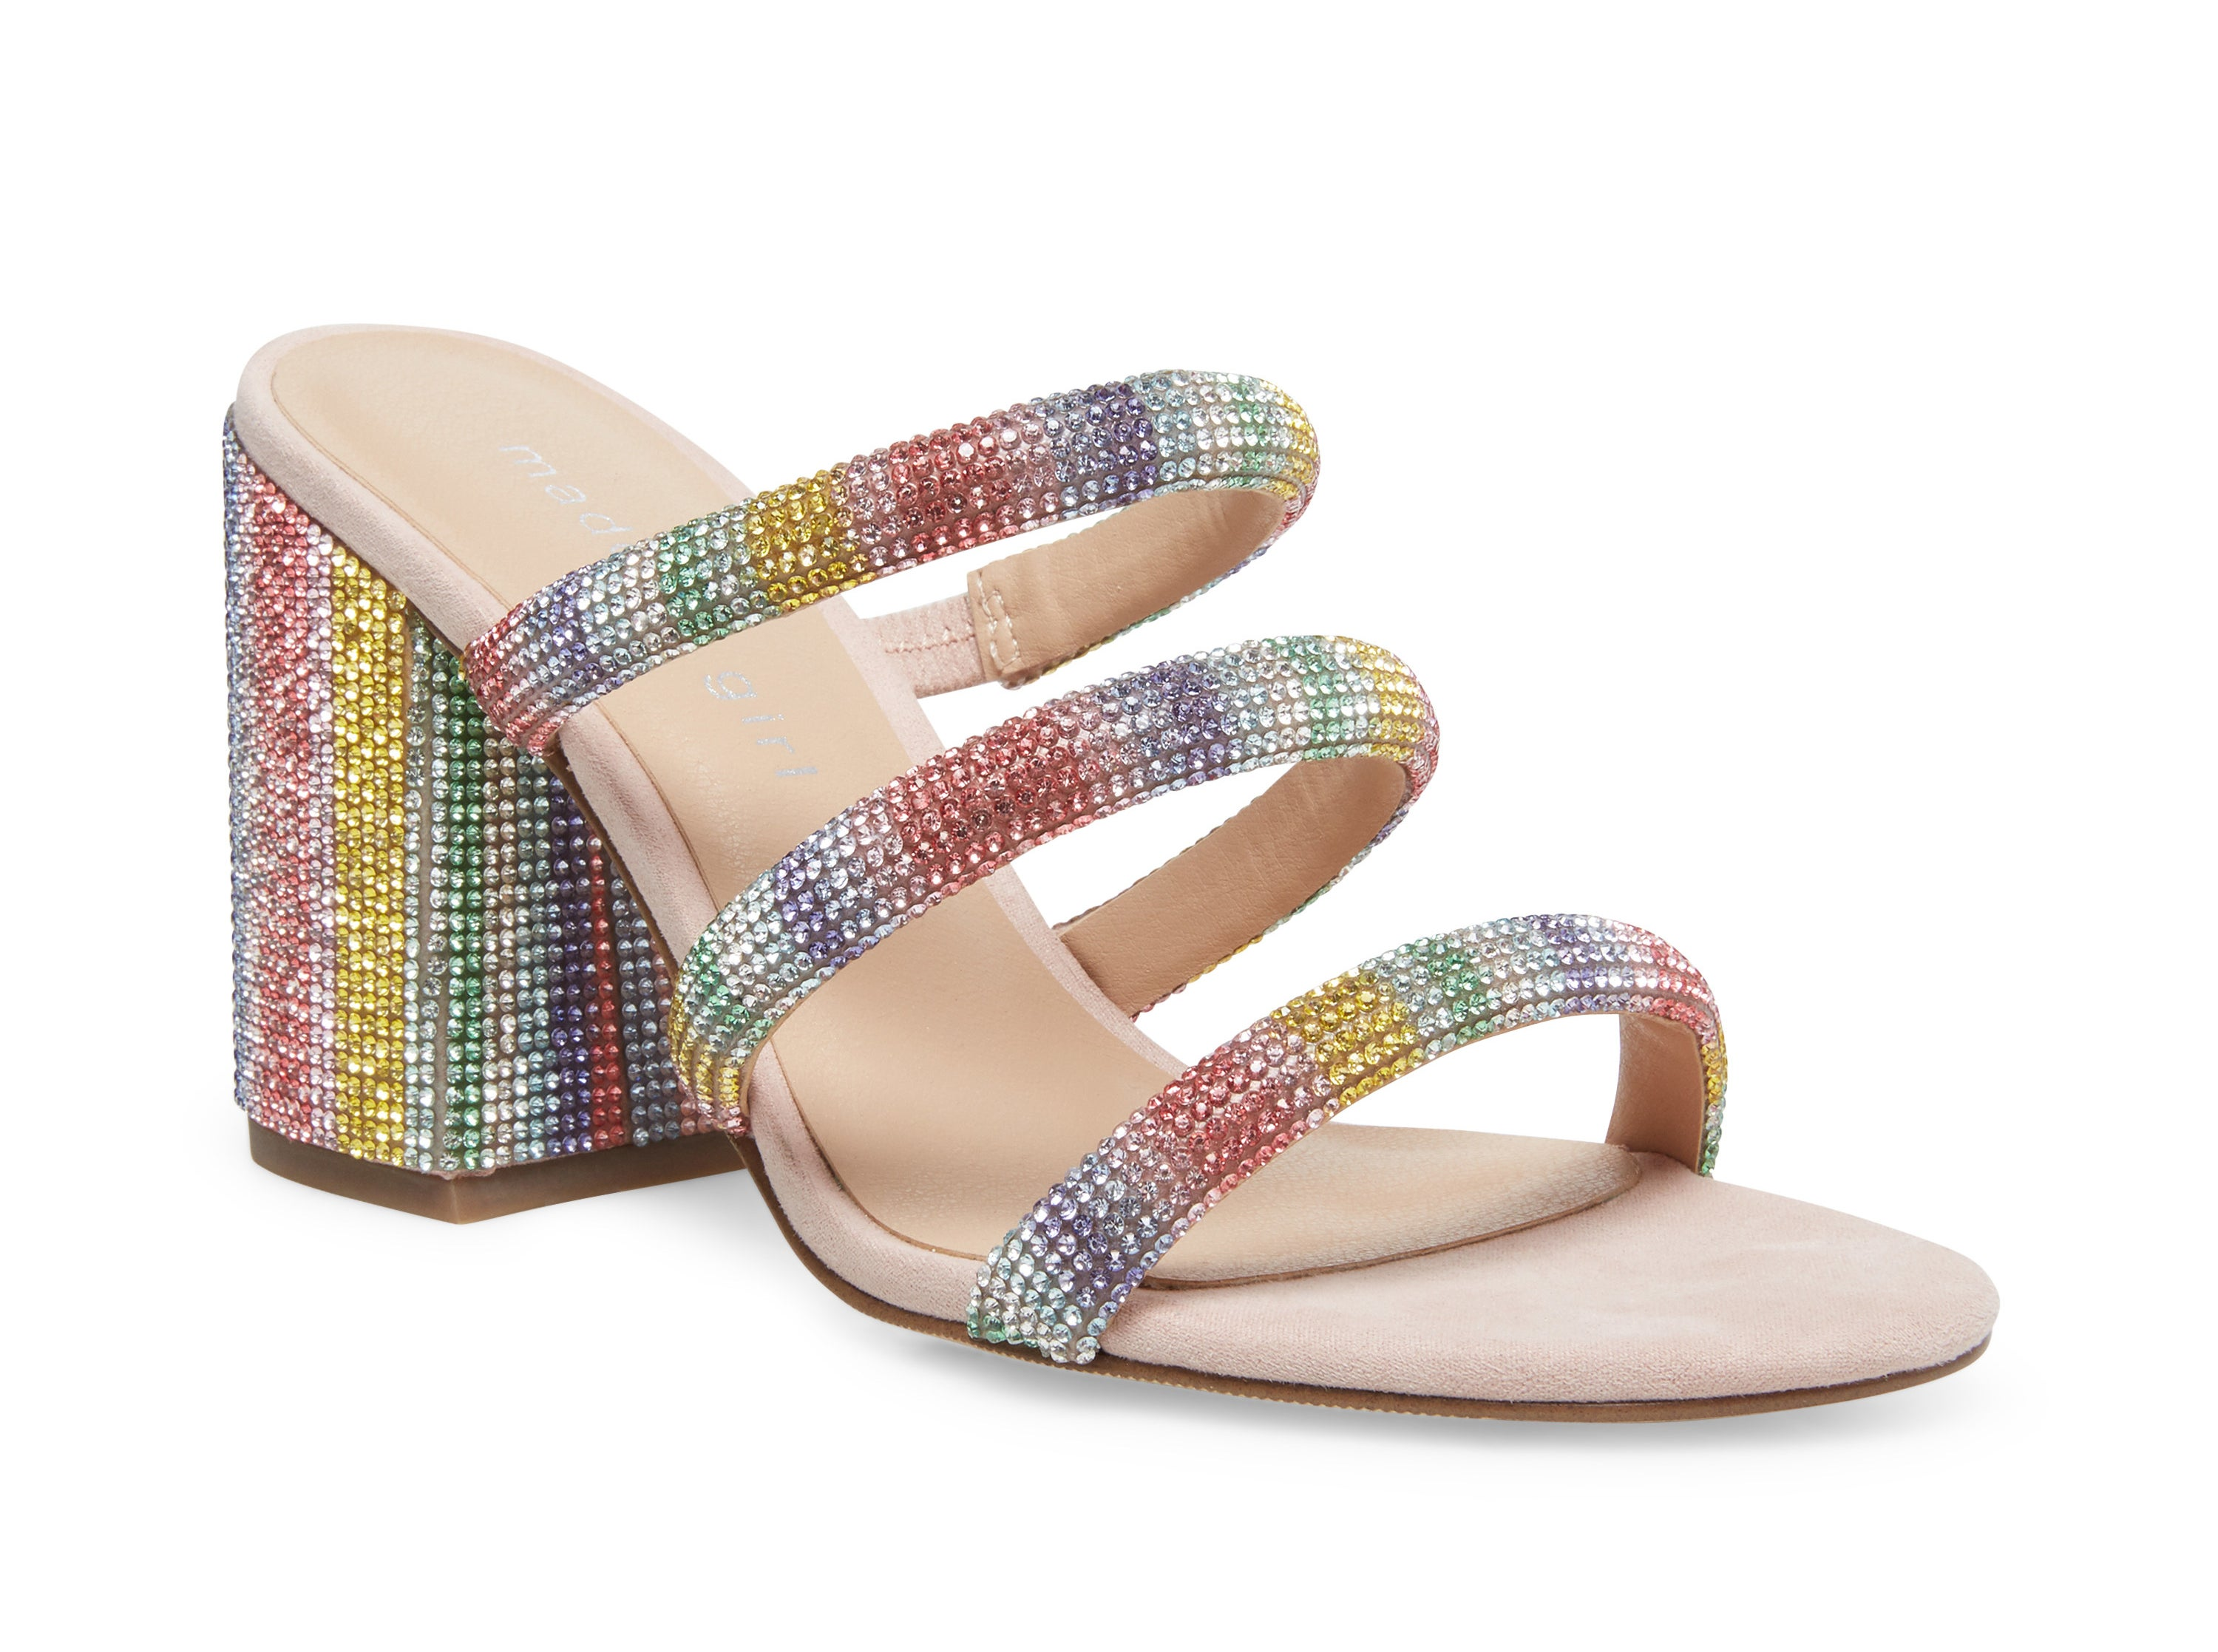 A rainbow-colored block heel sandal